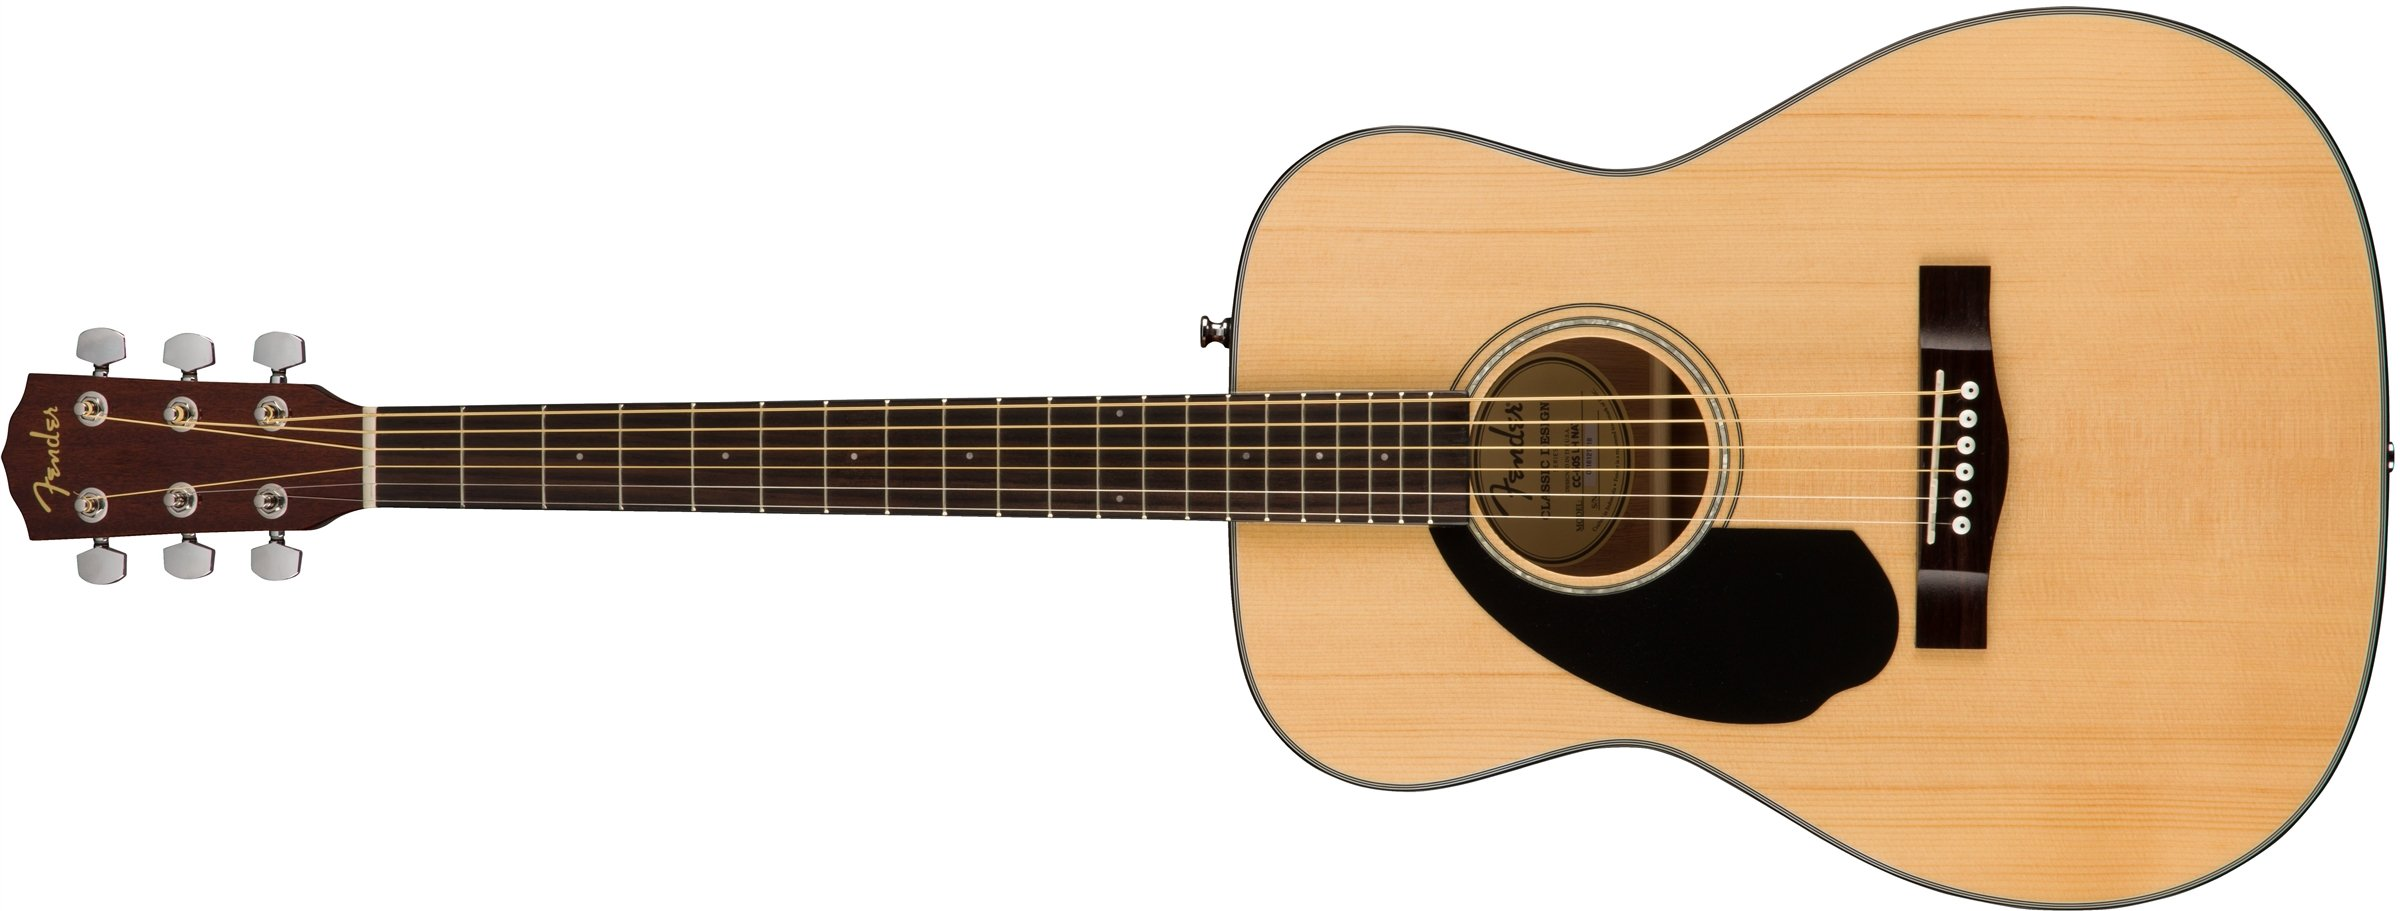 Fender CC-60s Left Handed Acoustic Guitar - Concert Body Style - Natural Finish